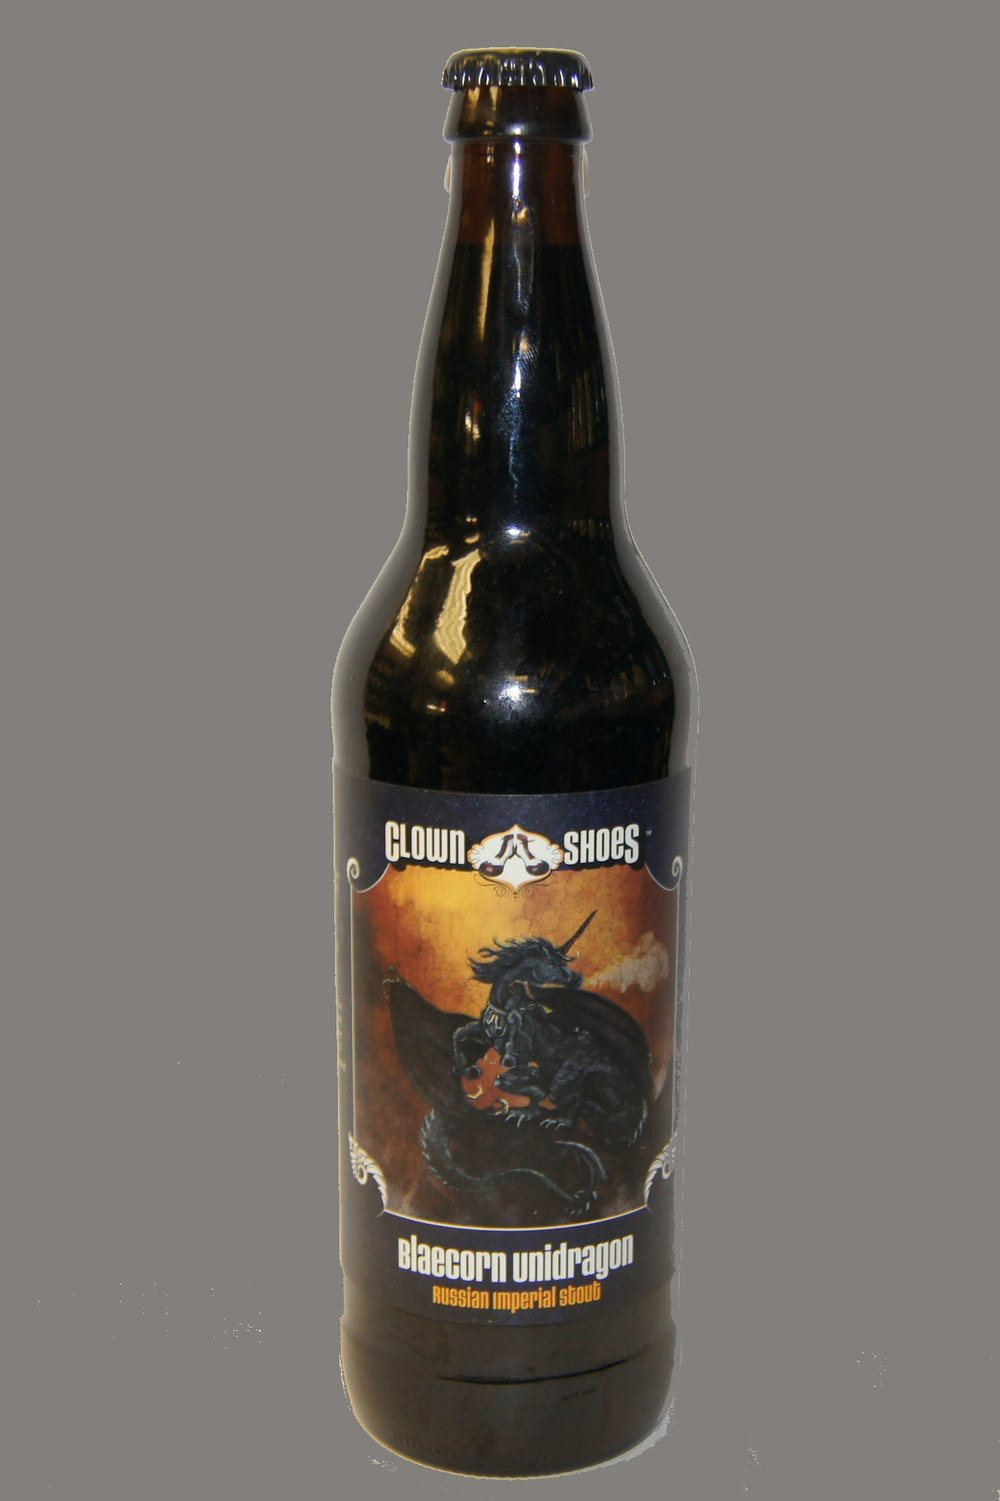 CLOWN SHOES-Blaecorn Unidragon Russian Imperial Stout.jpg